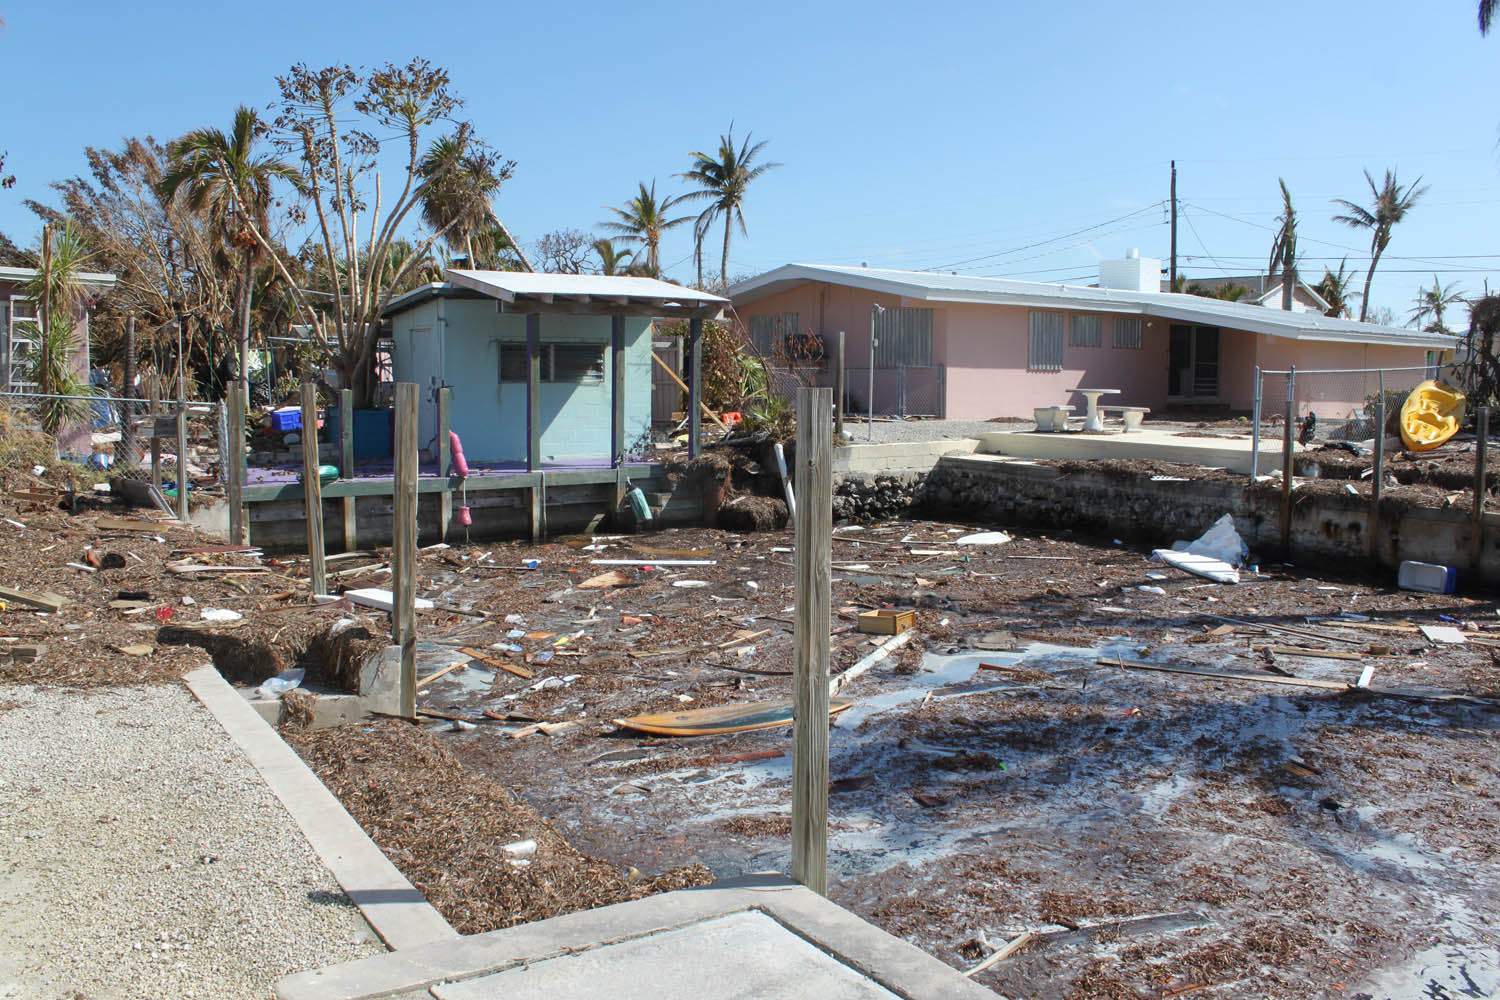 An Oceanside canal near 96th street is choked with debris. It smells.